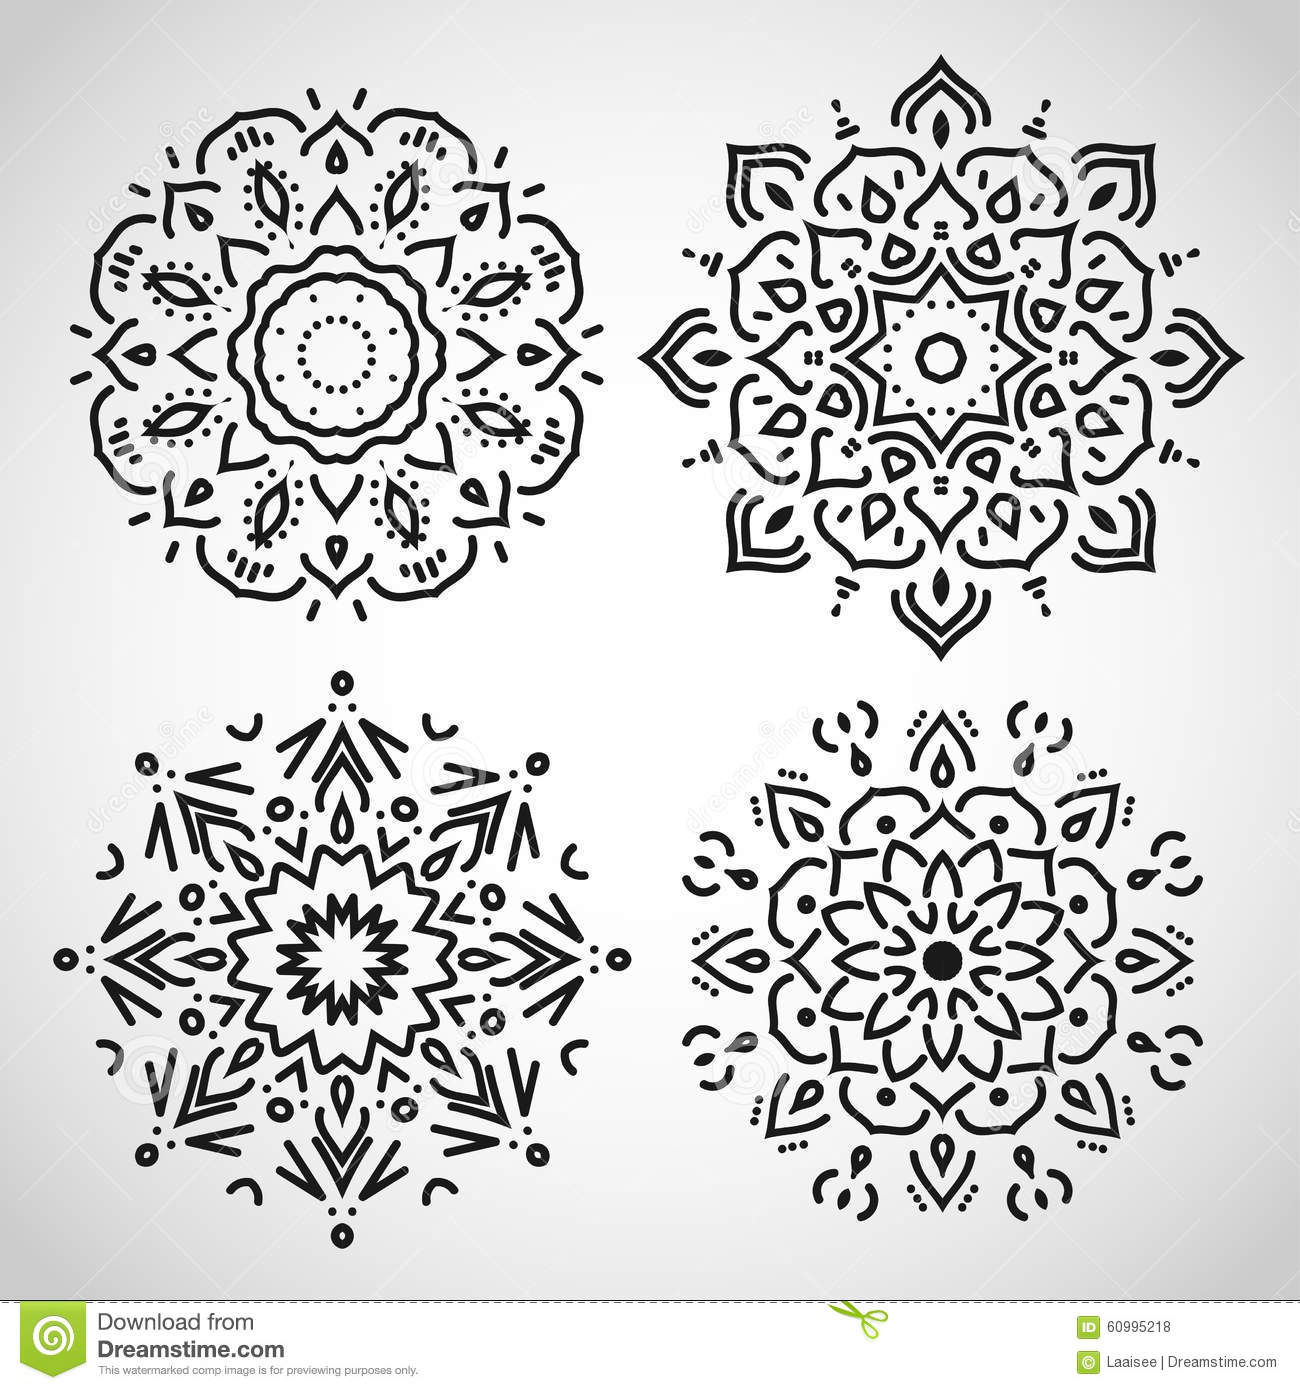 Black and white ornaments - Set Of Arabic Circle Ornaments Black On White In